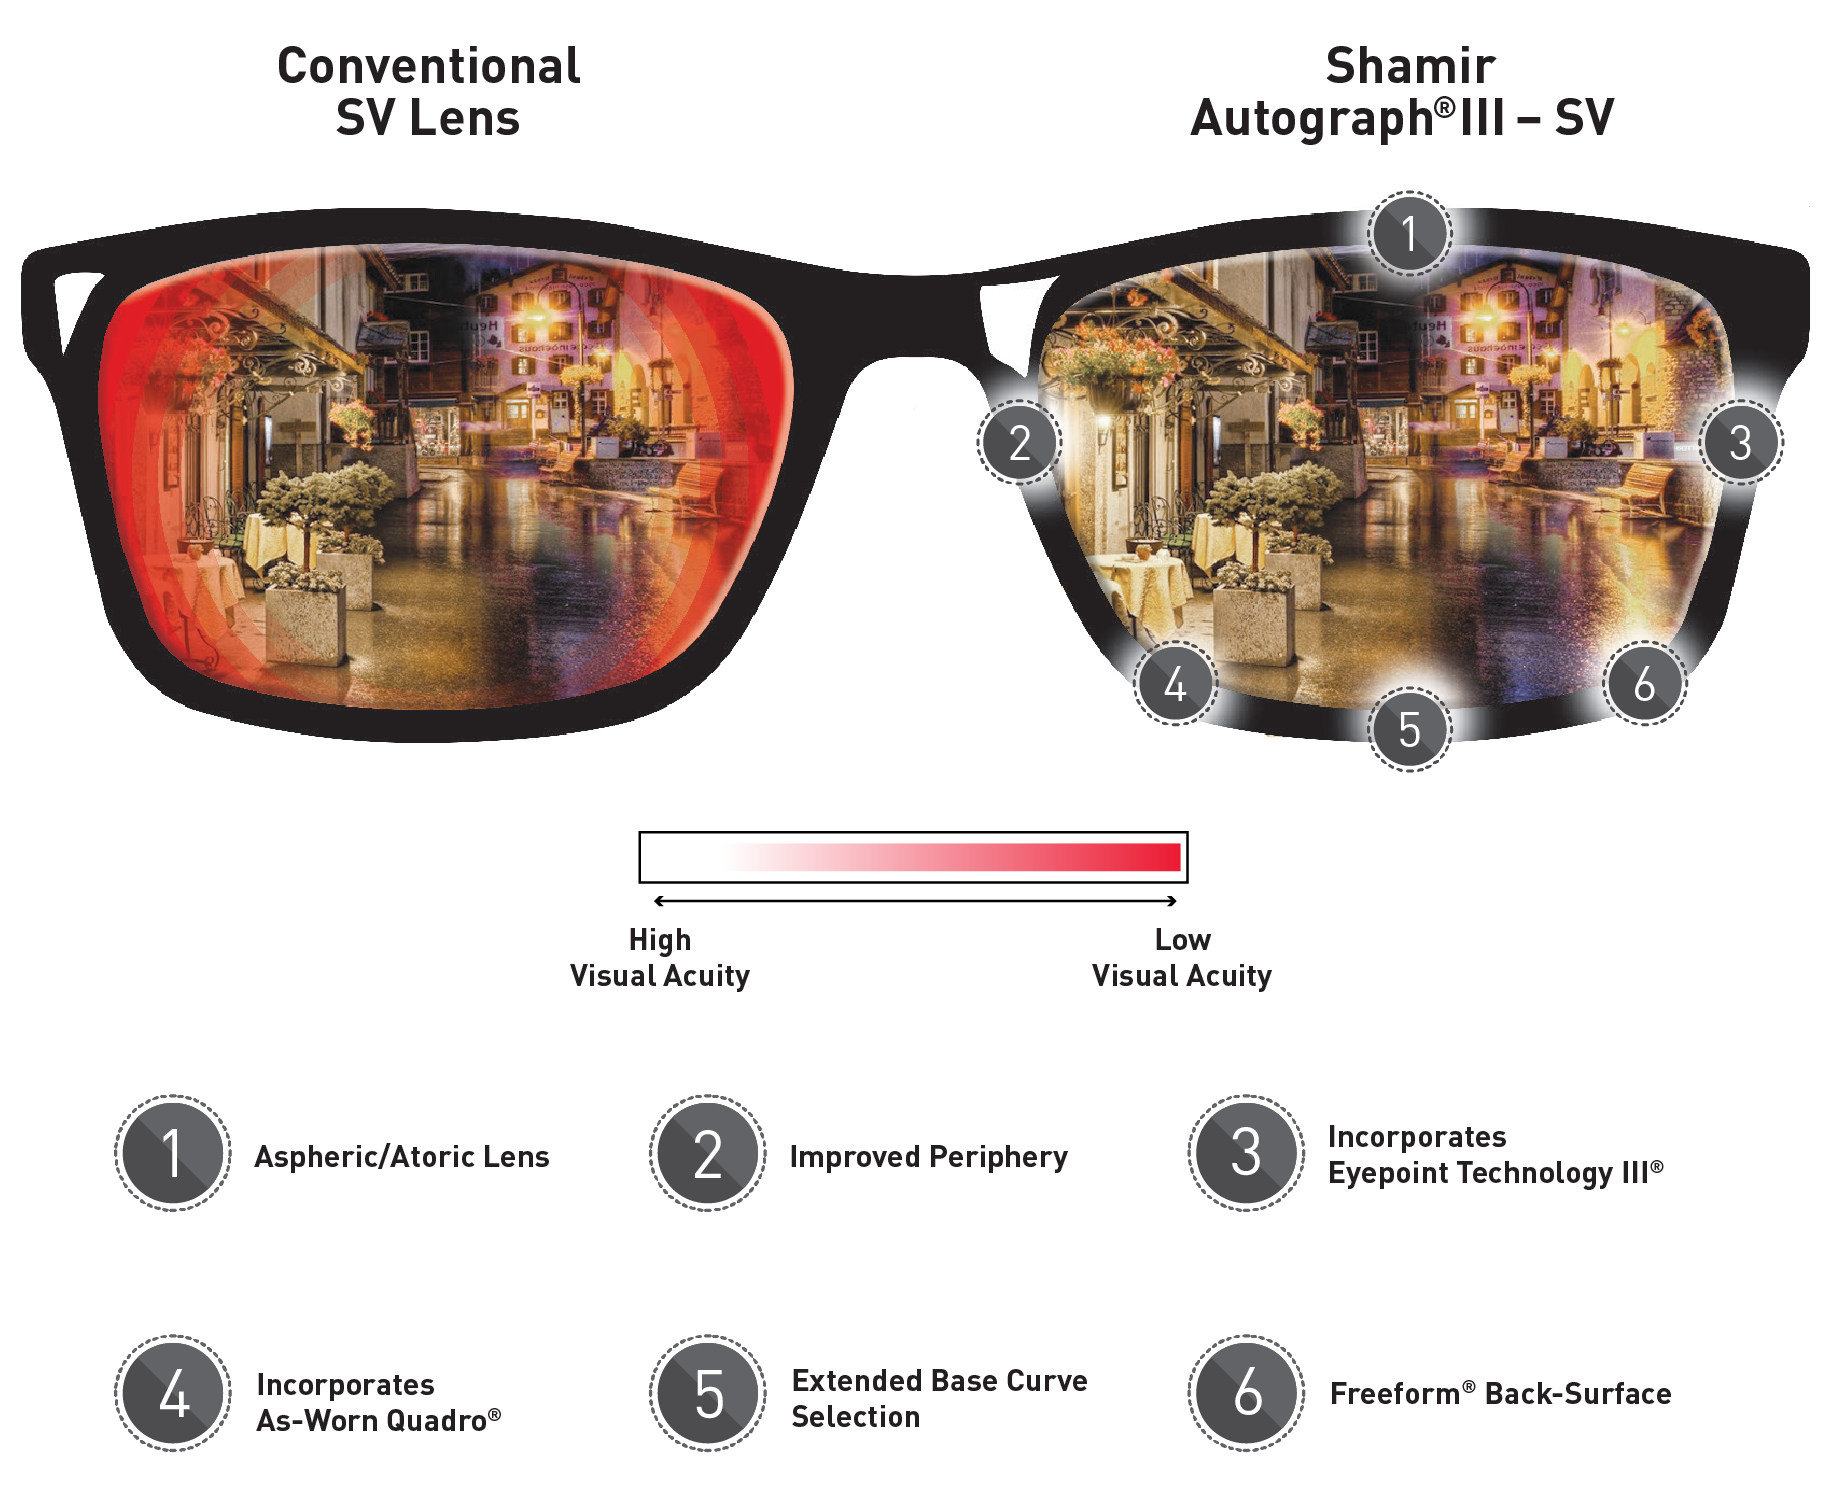 This images shows a comparison between lower quality vision out of a non-digital lens (on the left) and the high quality vision seen through a digital lens (on the right).